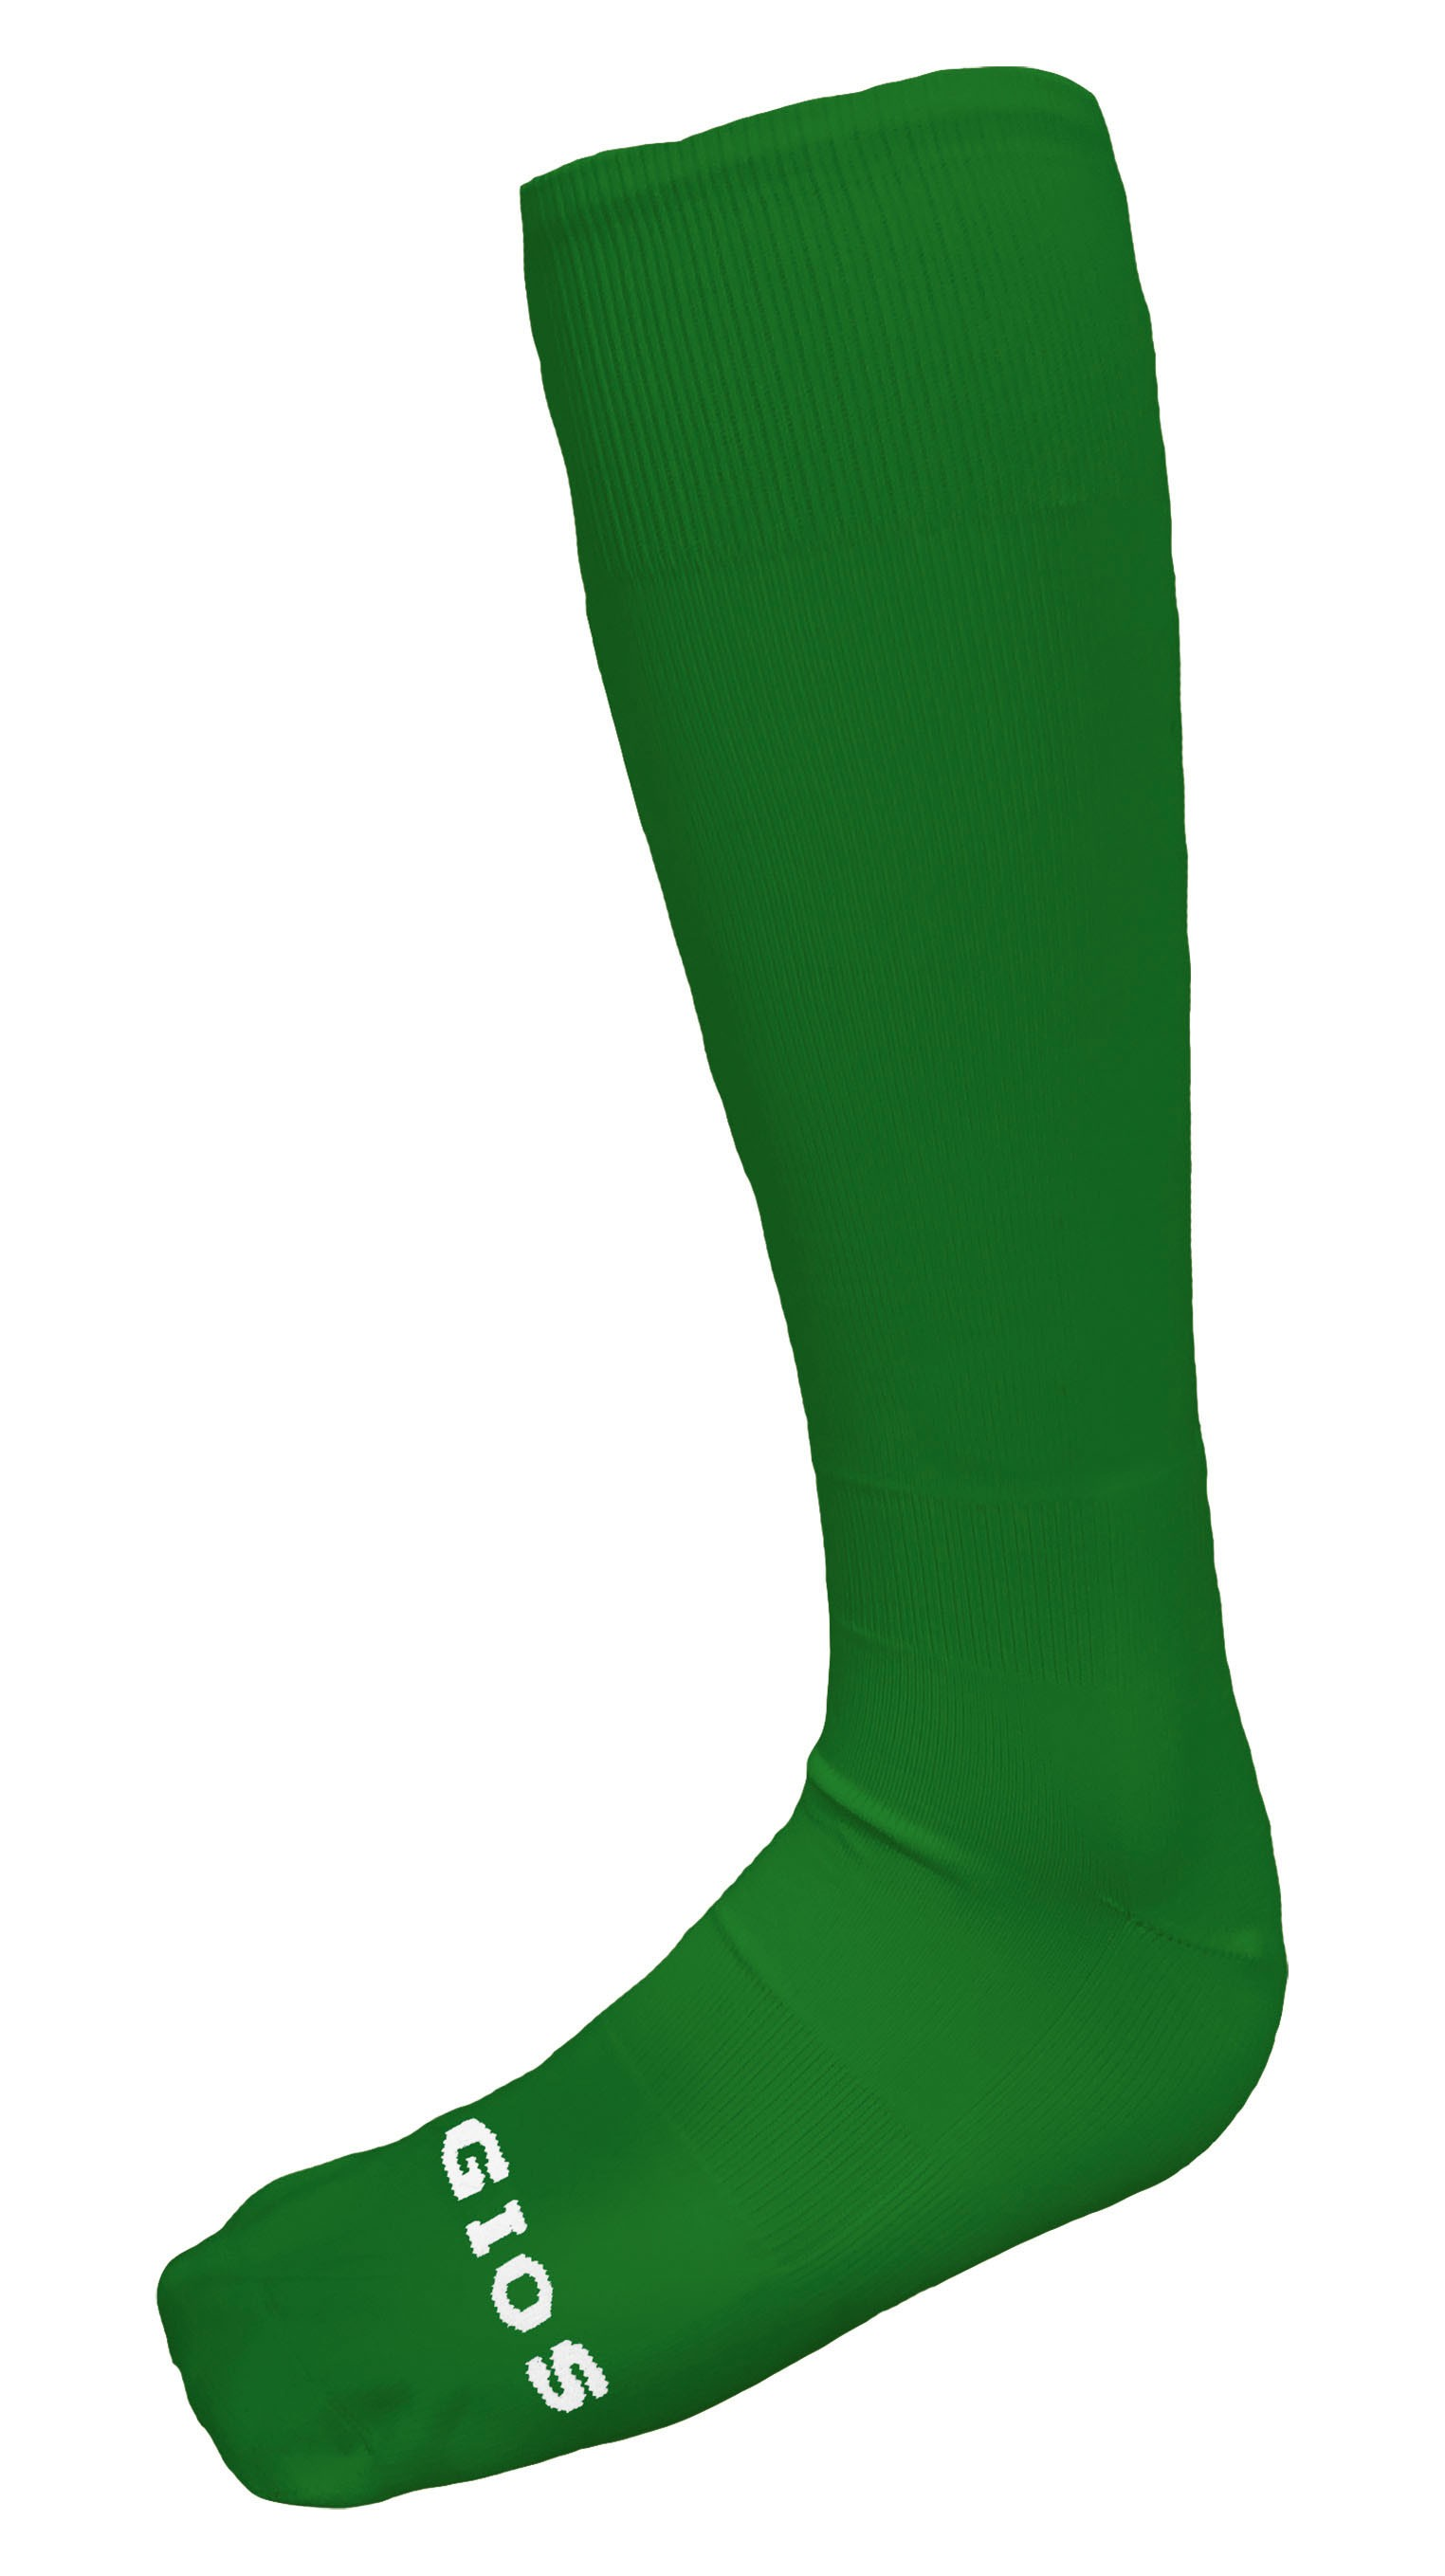 ENDURANCE SOCKS / MEDIA ENDURANCE GREEN